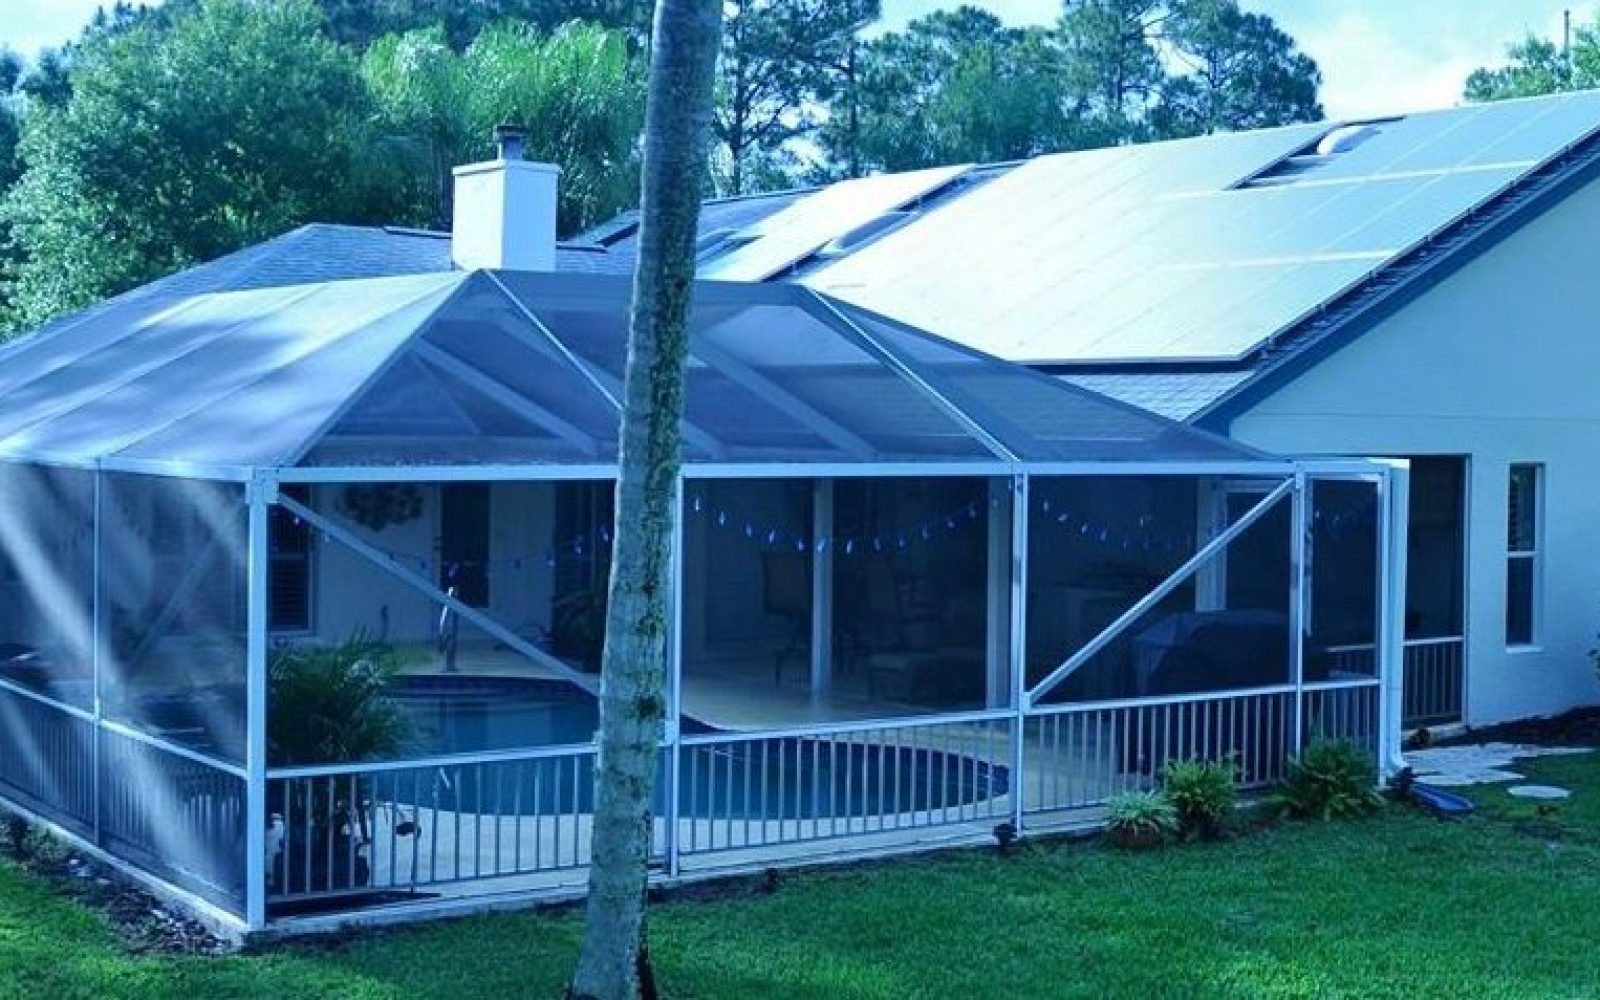 Electrek green energy brief: Residential solar myth debunked (again), Navy calls out Carolina politicians, and more!